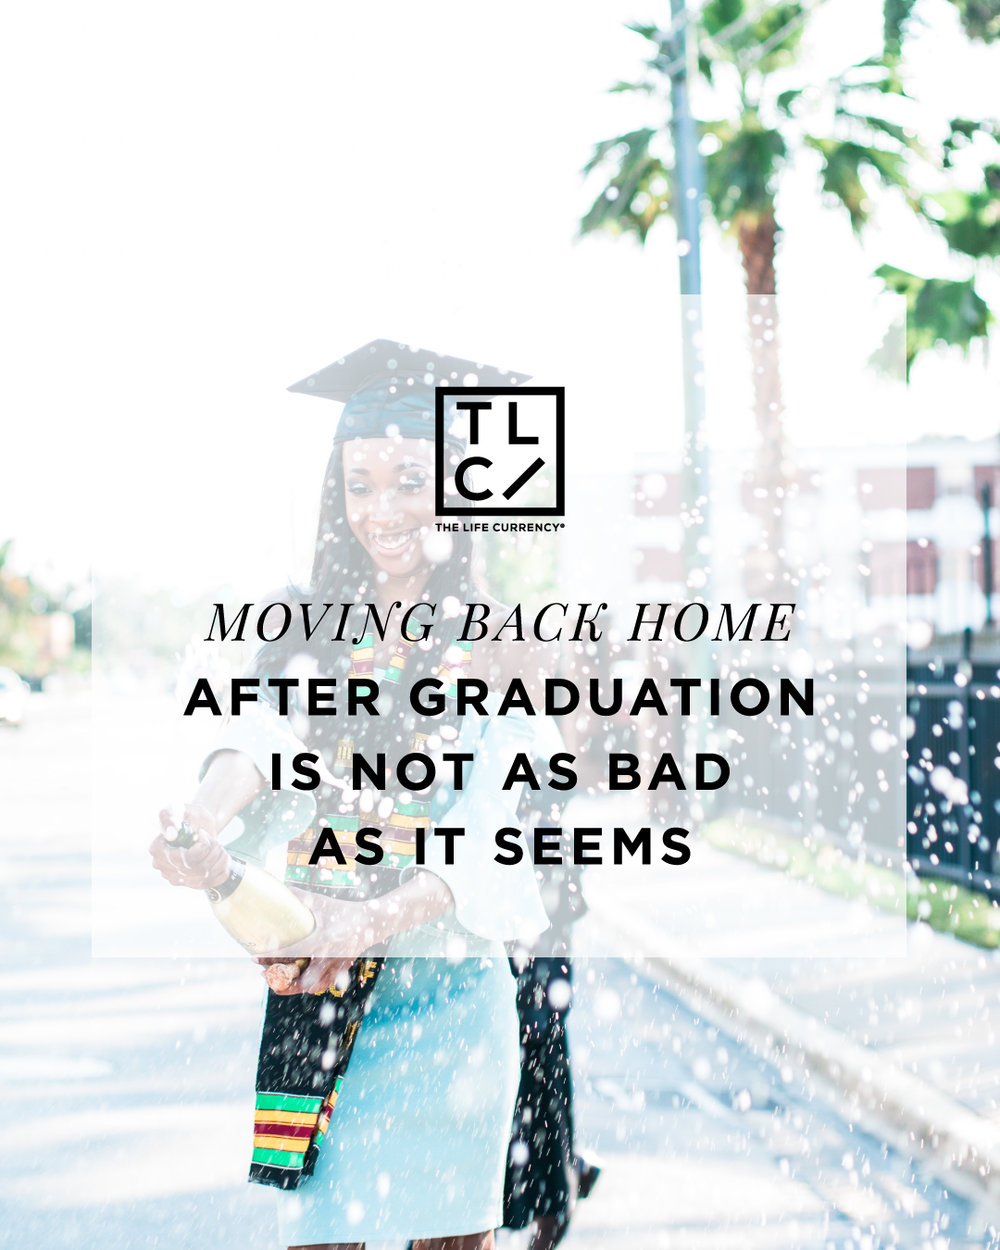 Moving Back Home After Graduation is not as Bad as it Seems